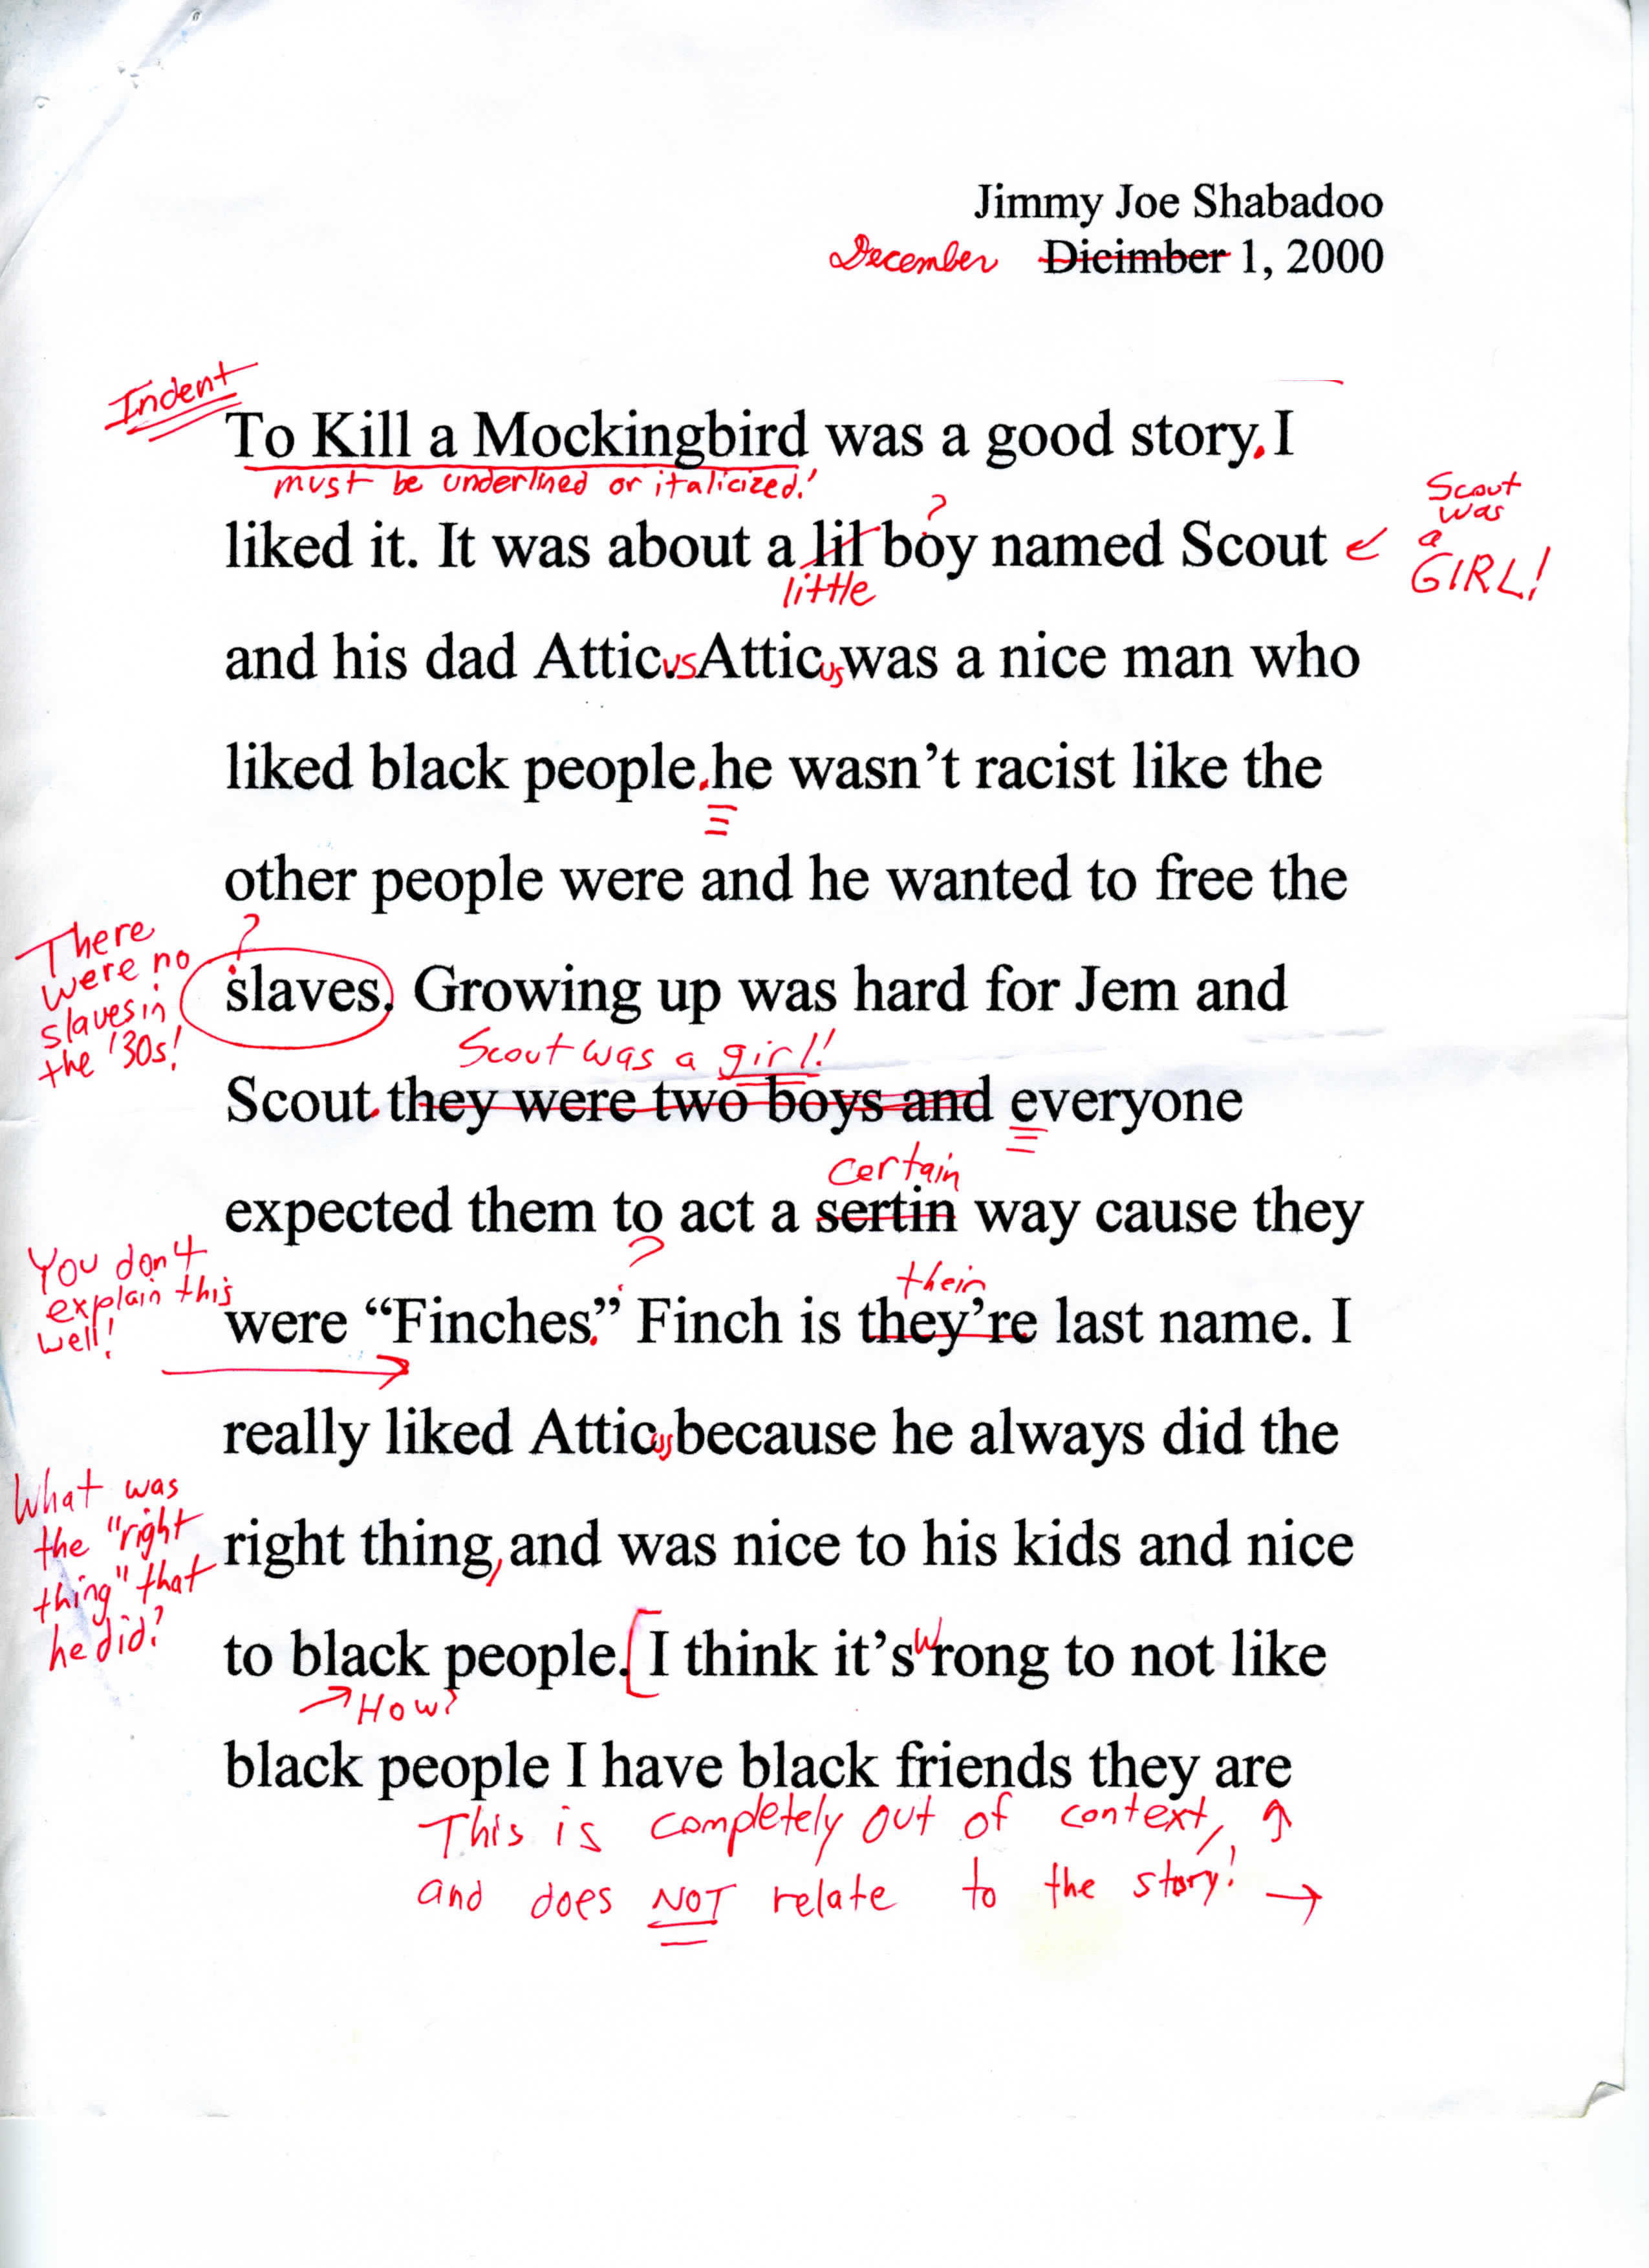 023 To Kill Mockingbird Parody Paper Essay Example Satire Fearsome Essays About High School Examples On Gun Control Full